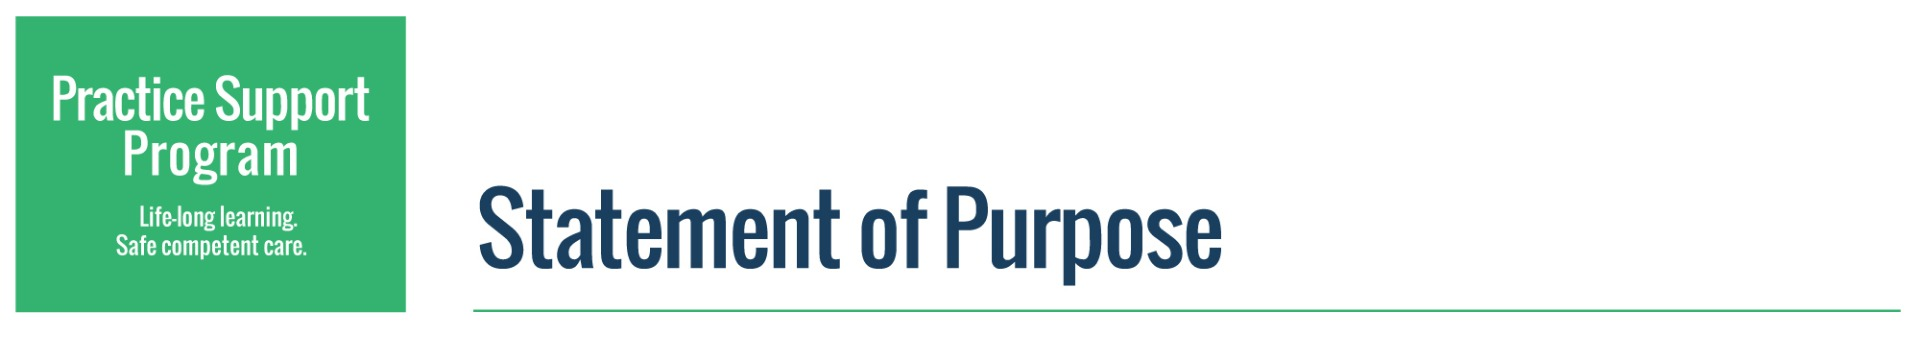 Practice Support Program Statement of Purpose